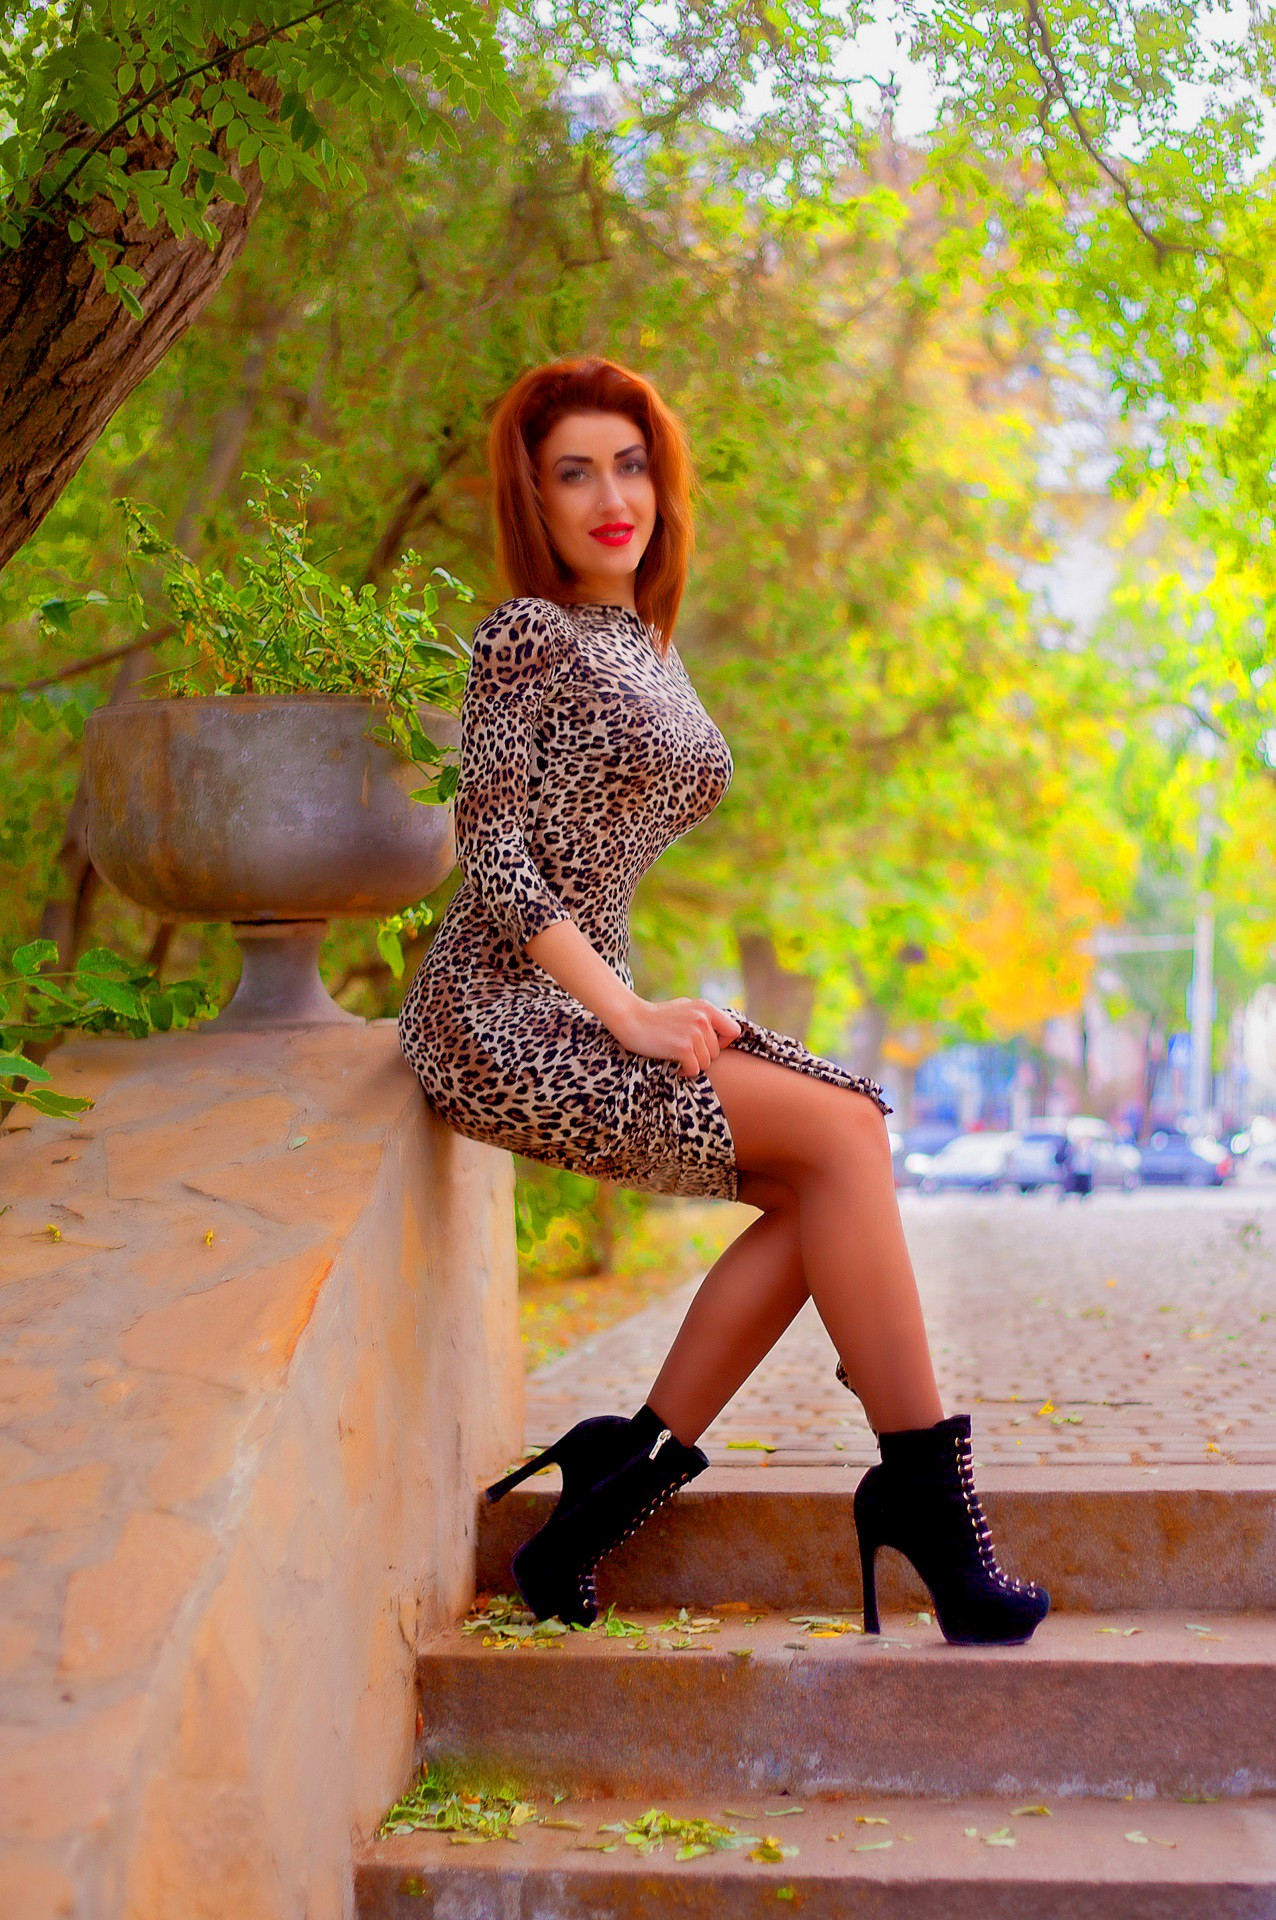 balta divorced singles personals Online ladies since there is a time difference, if you wish to meet more ladies for live chat, it's best to come during their daytime hours click here to find ladies you can start camshare with now.